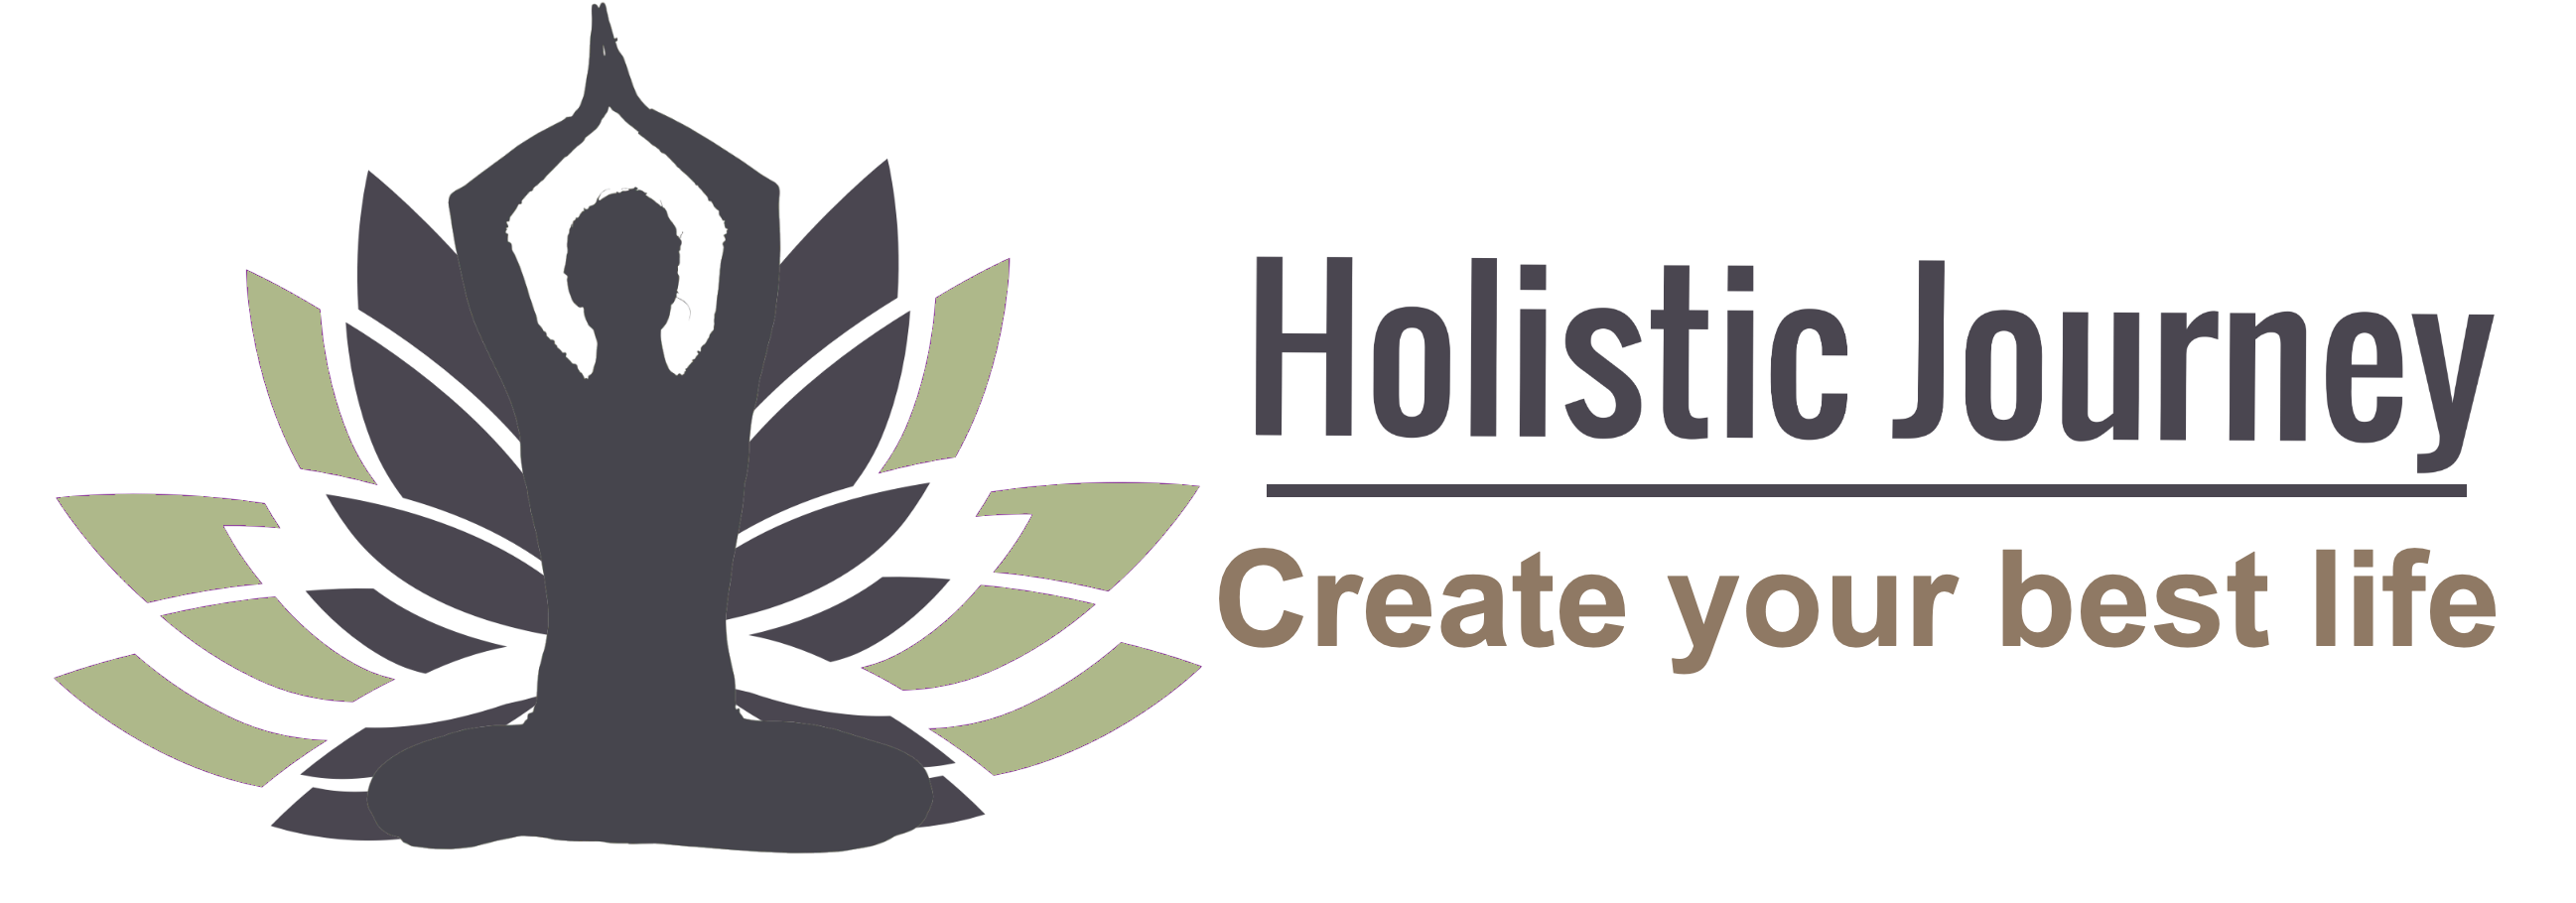 Holistic Journey